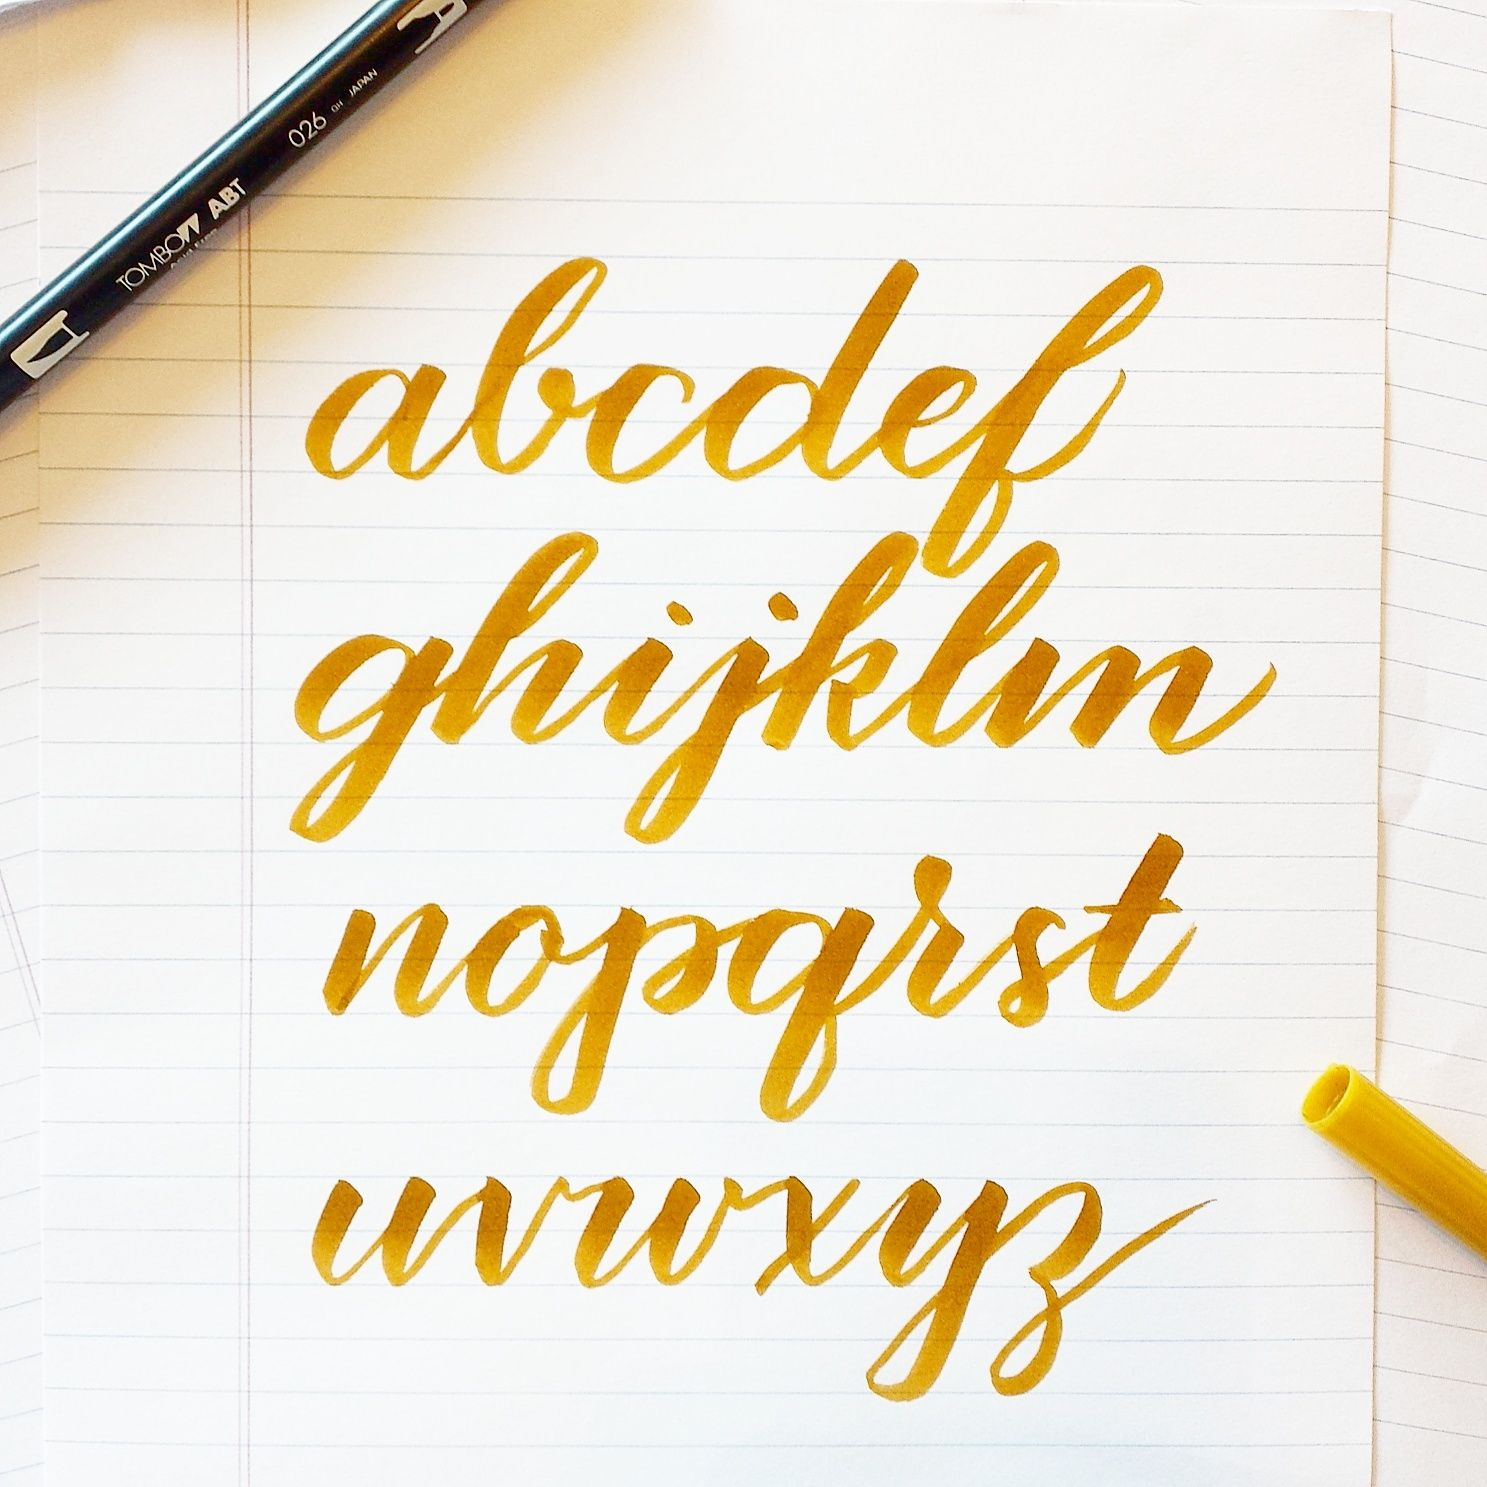 3 Ways To Improve Your Brush Calligraphy With Images